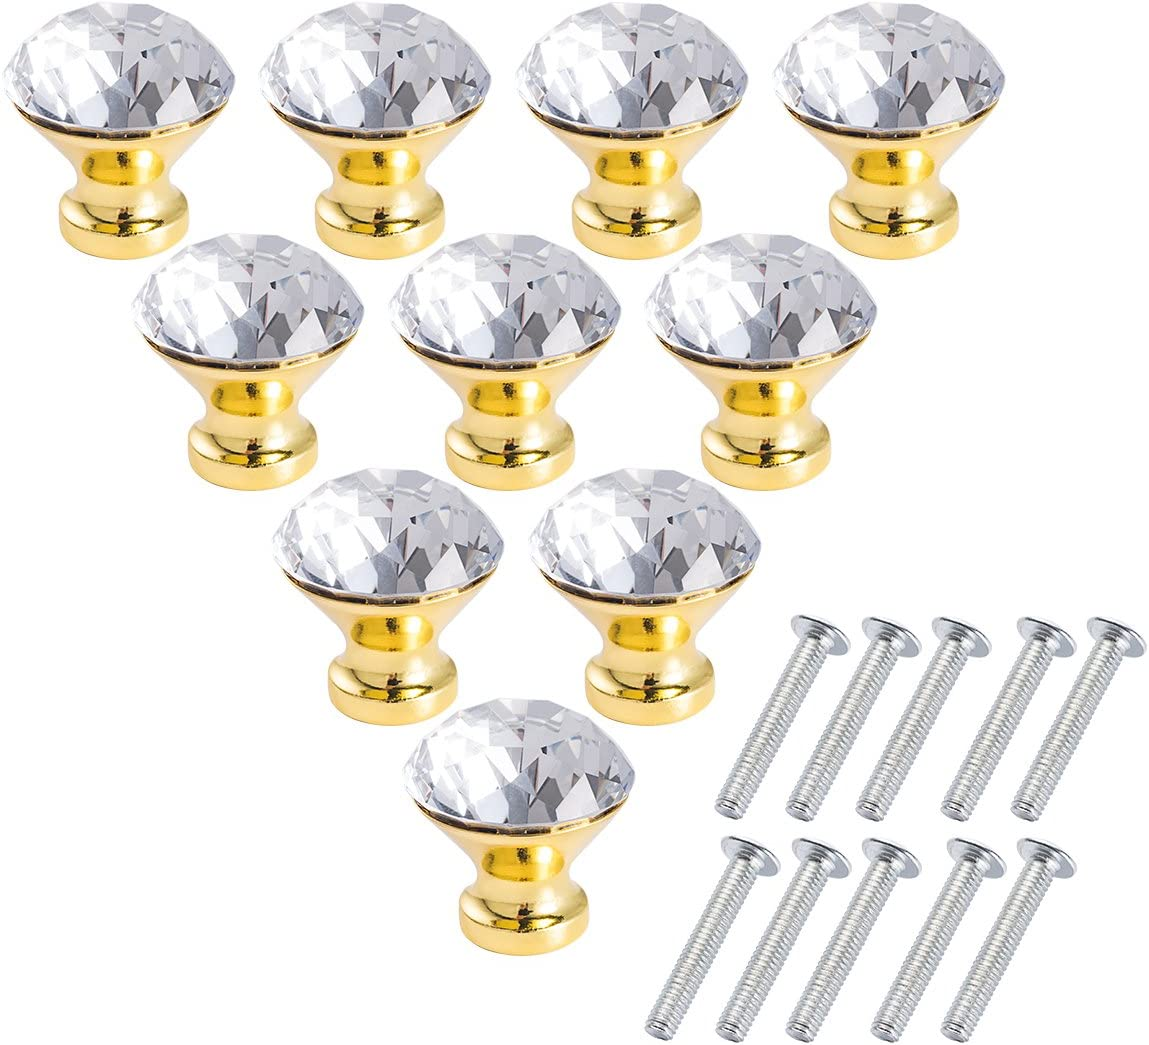 Crystal Glass Cabinet Knobs - LONGWIN 10pcs 30mm Crystal Dresser Cupboard Drawer Handles (Gold)